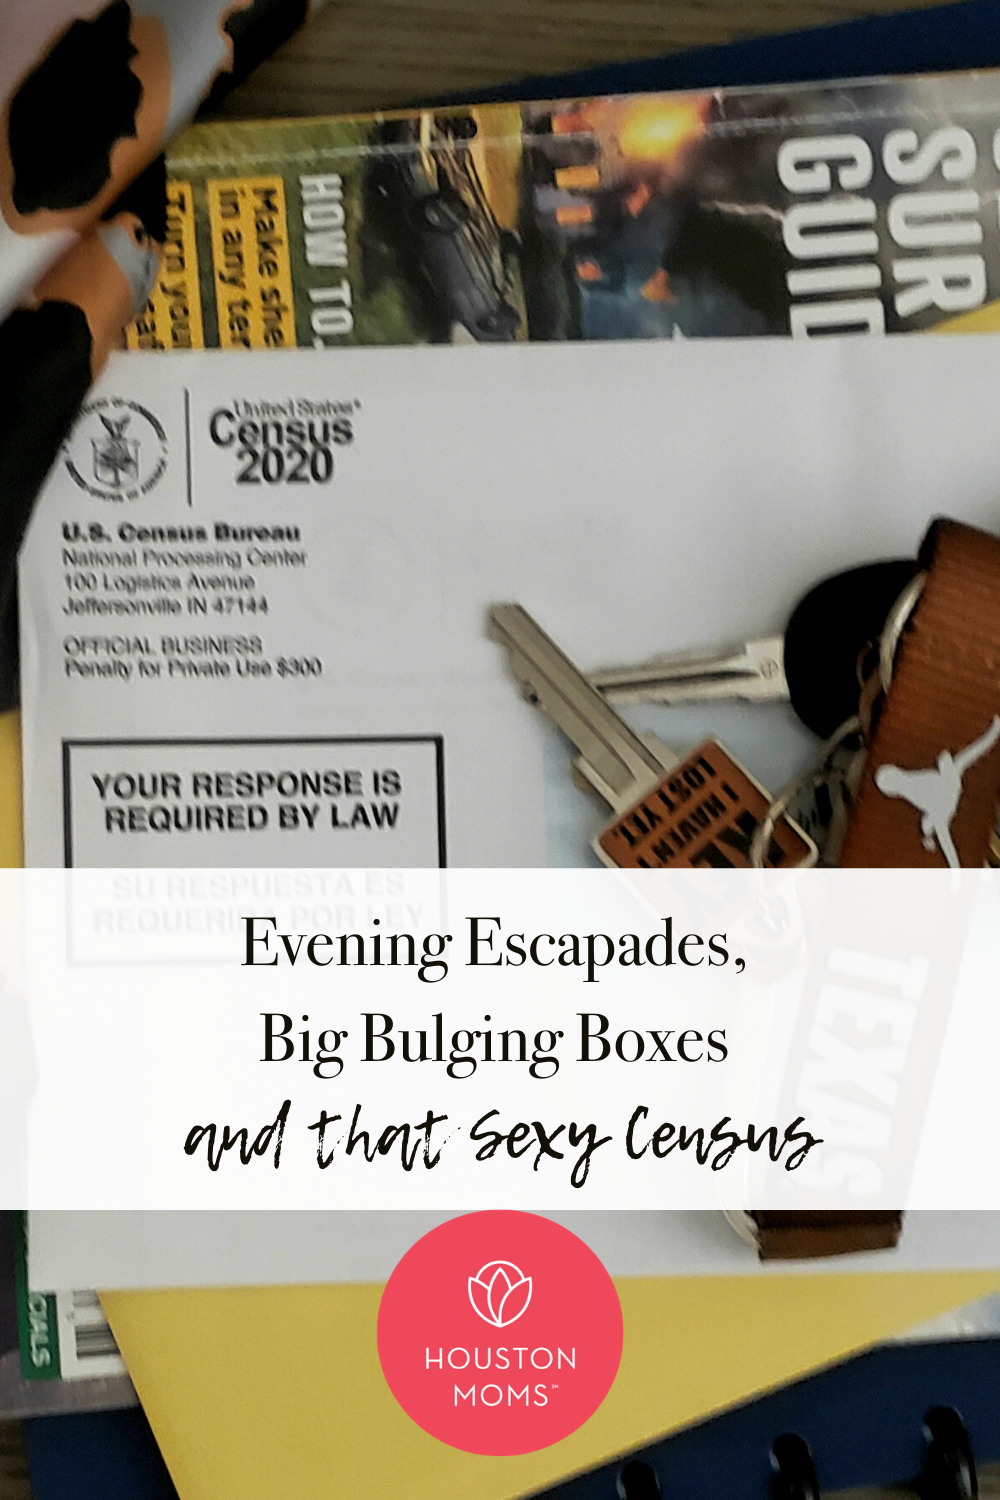 "Houston Moms ""Eventing Escapades, Big Bulging Boxes, and that Sexy Census"" #houstonmomsblog #houstonmoms #momsaroundhouston"